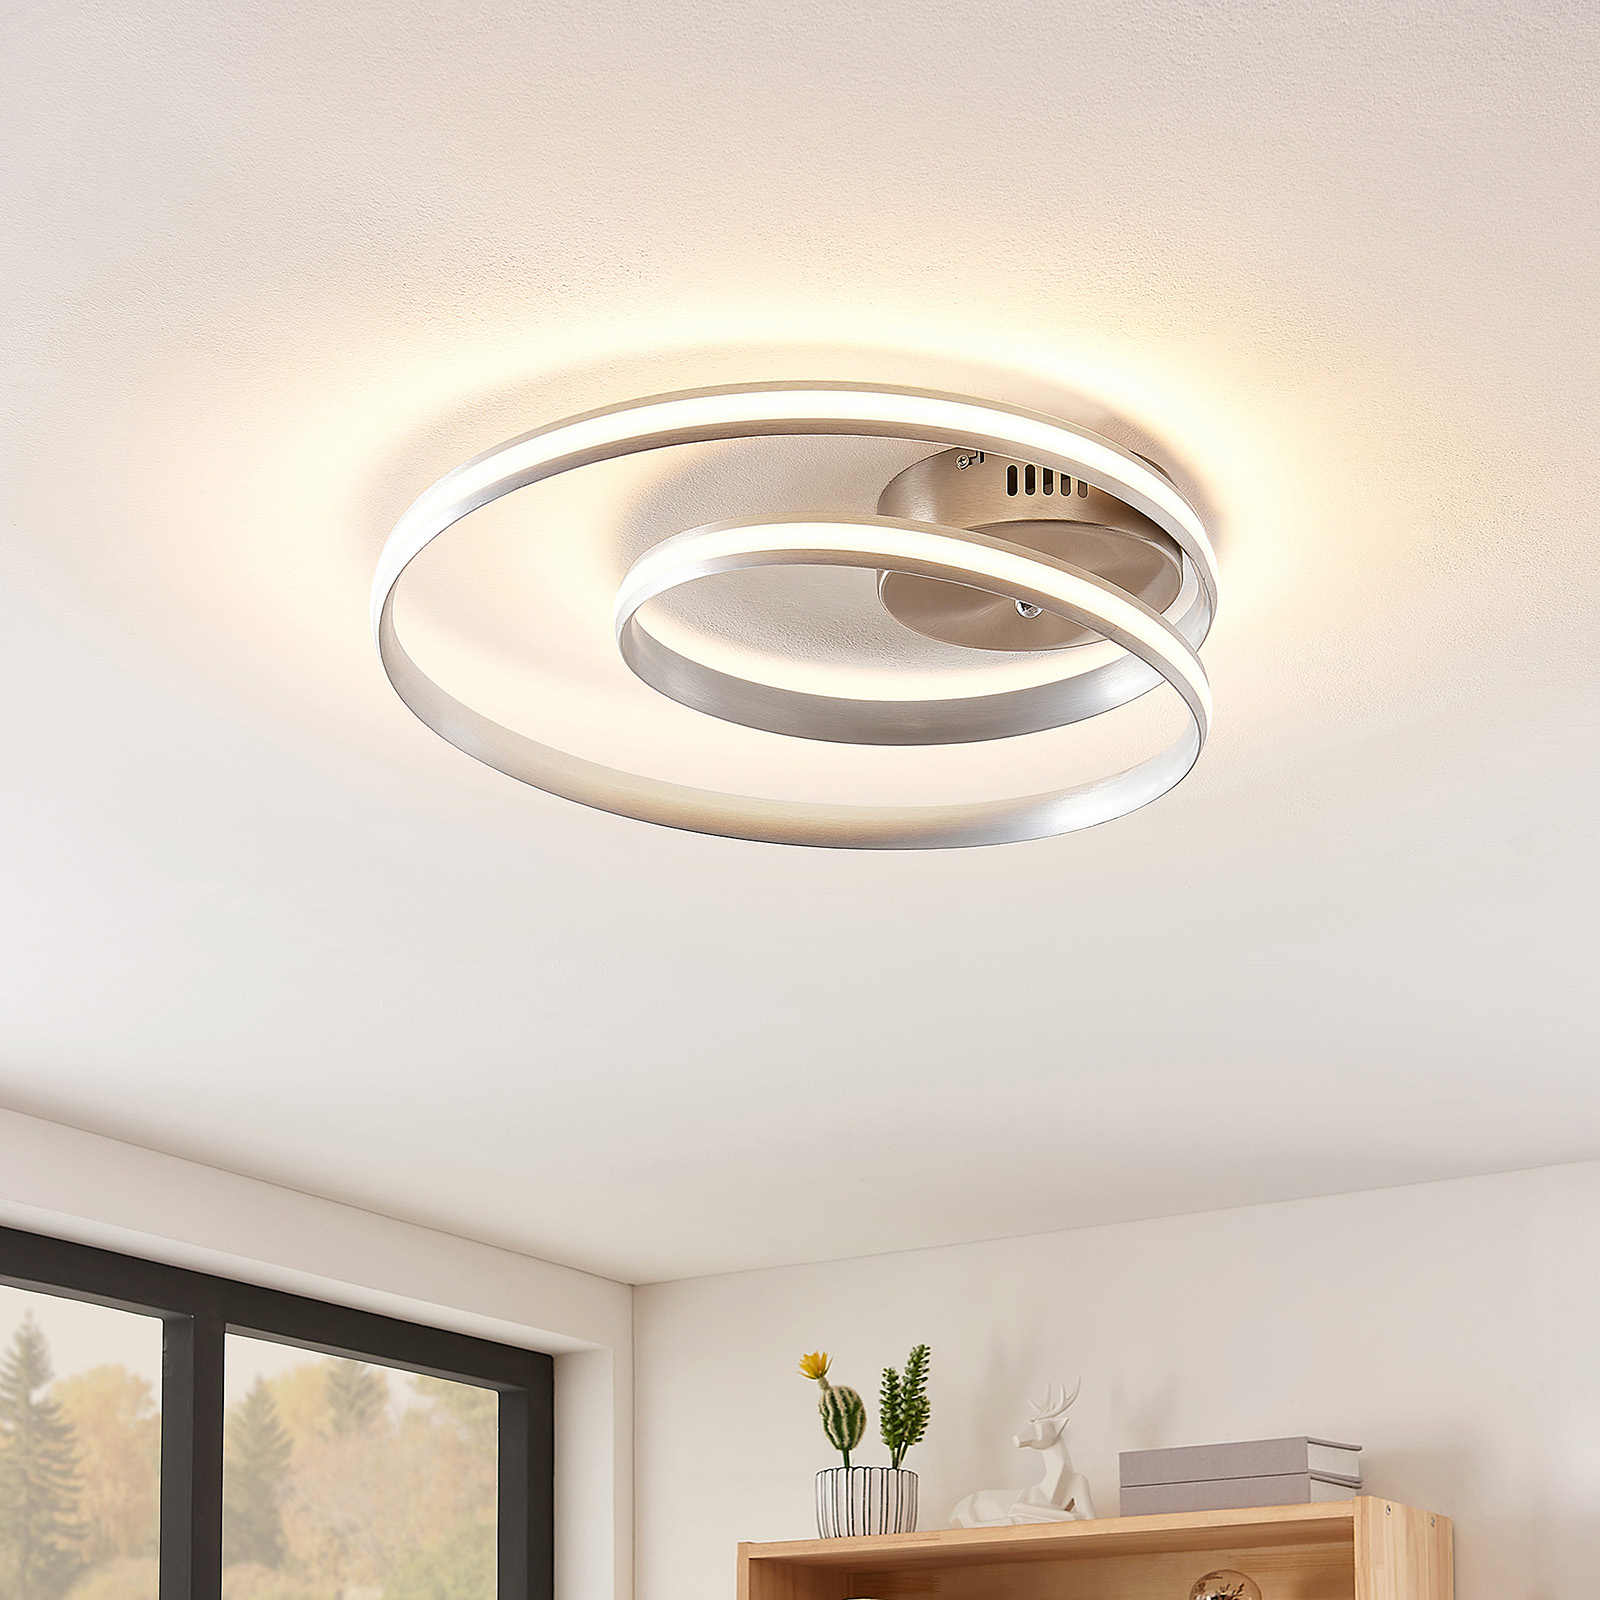 Lindby Smart Verio lampa sufitowa LED